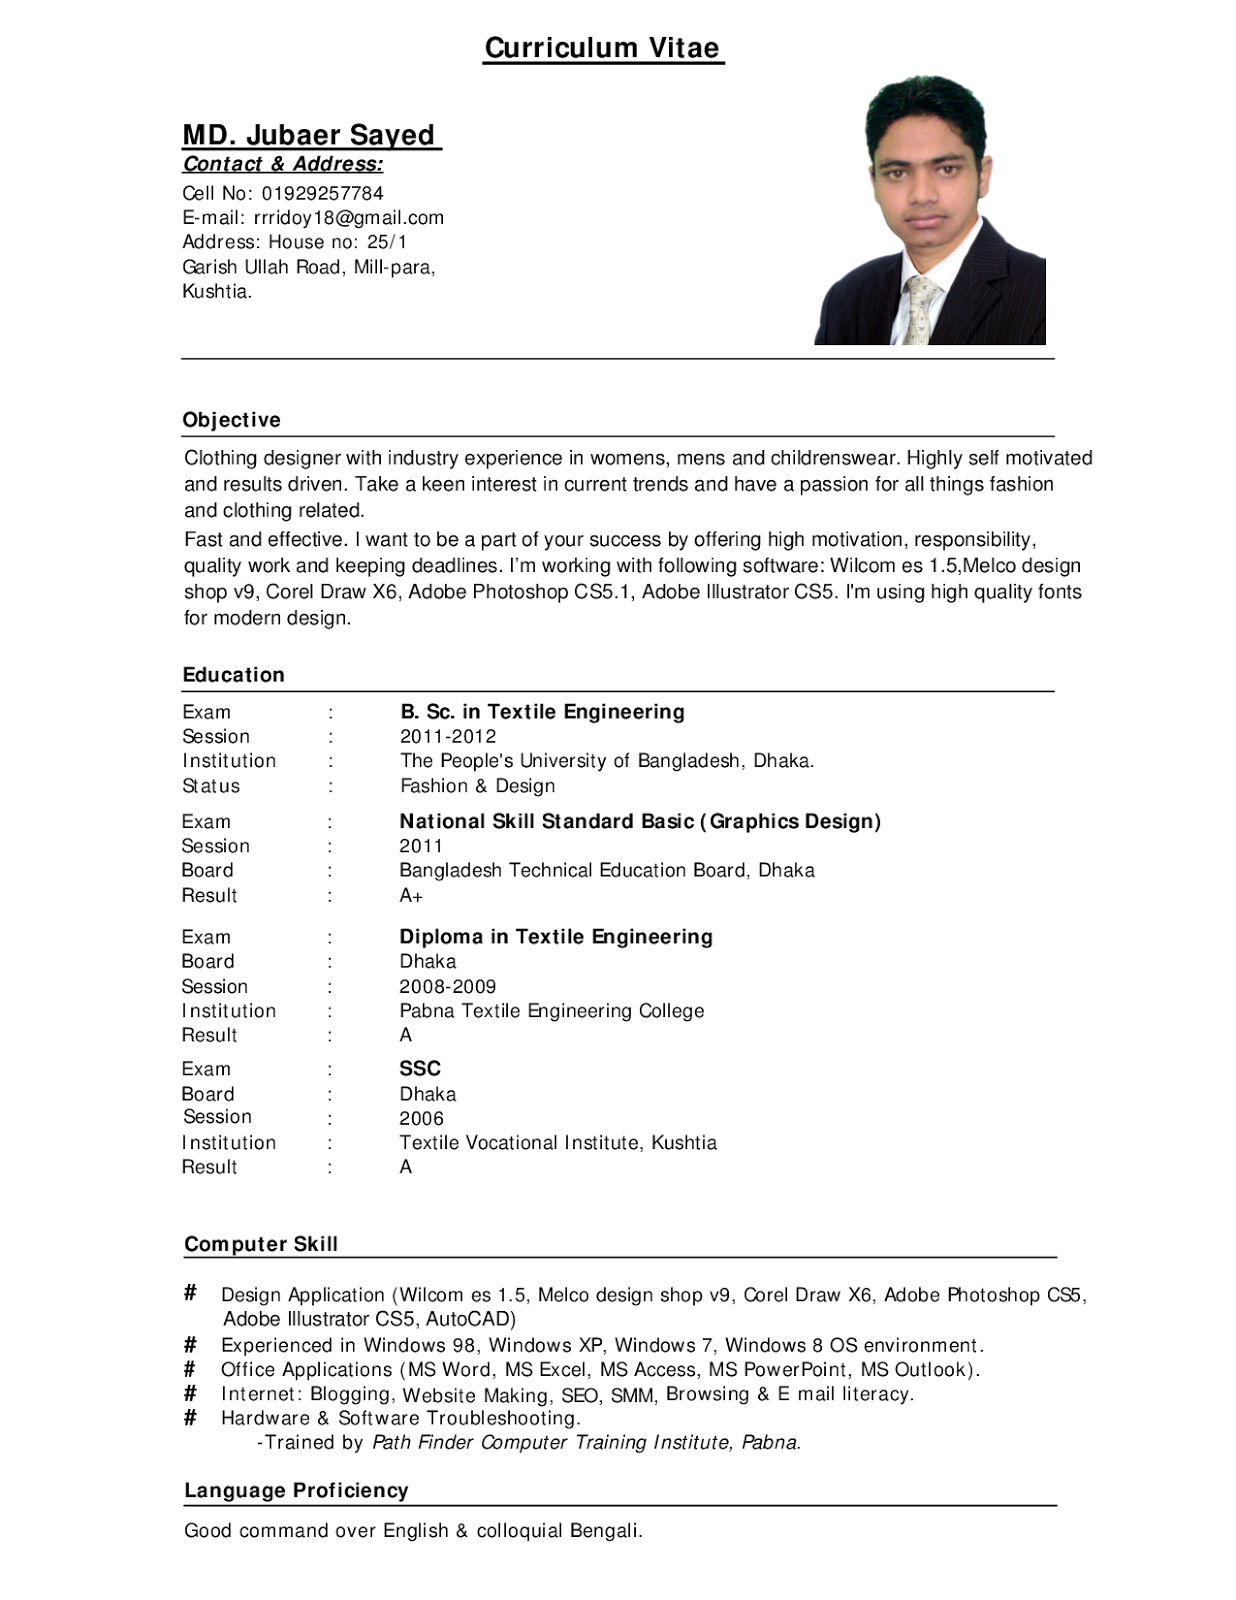 job resume samples pdf - Best Job Resume Format